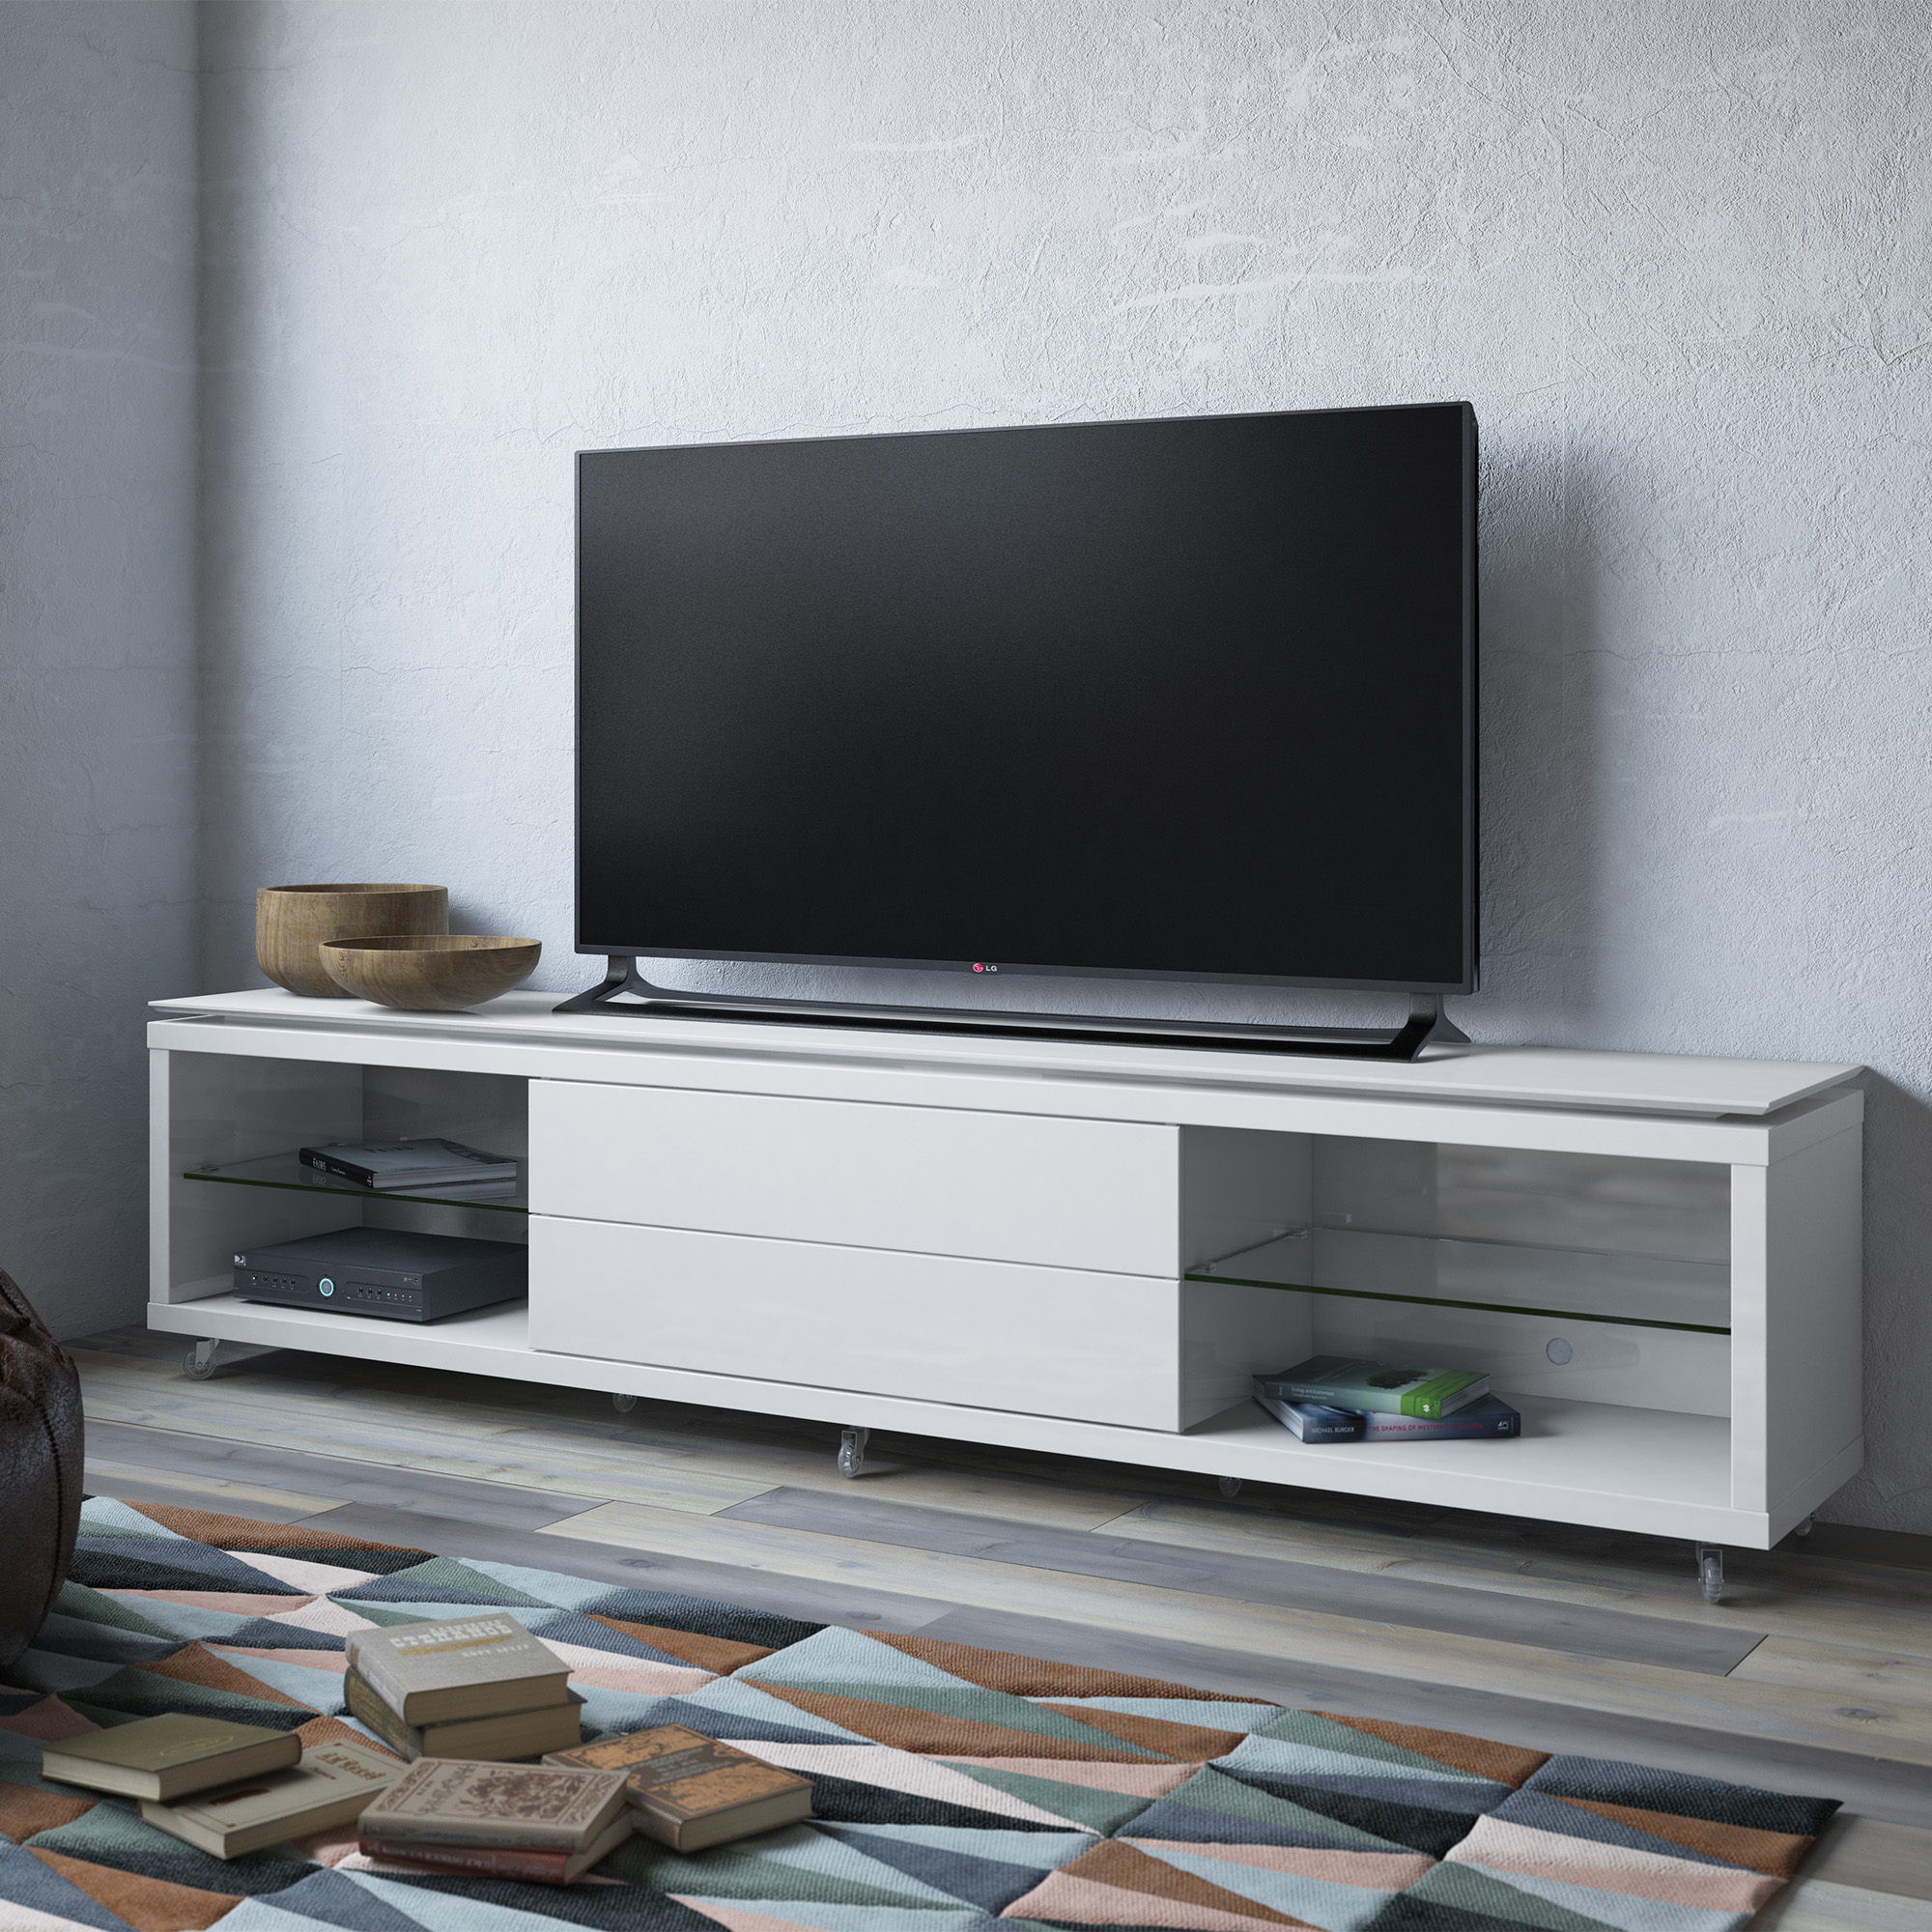 white gloss tv stand Lincoln White Gloss TV Stand 2.2 w/Silicon Casters by Manhattan  white gloss tv stand